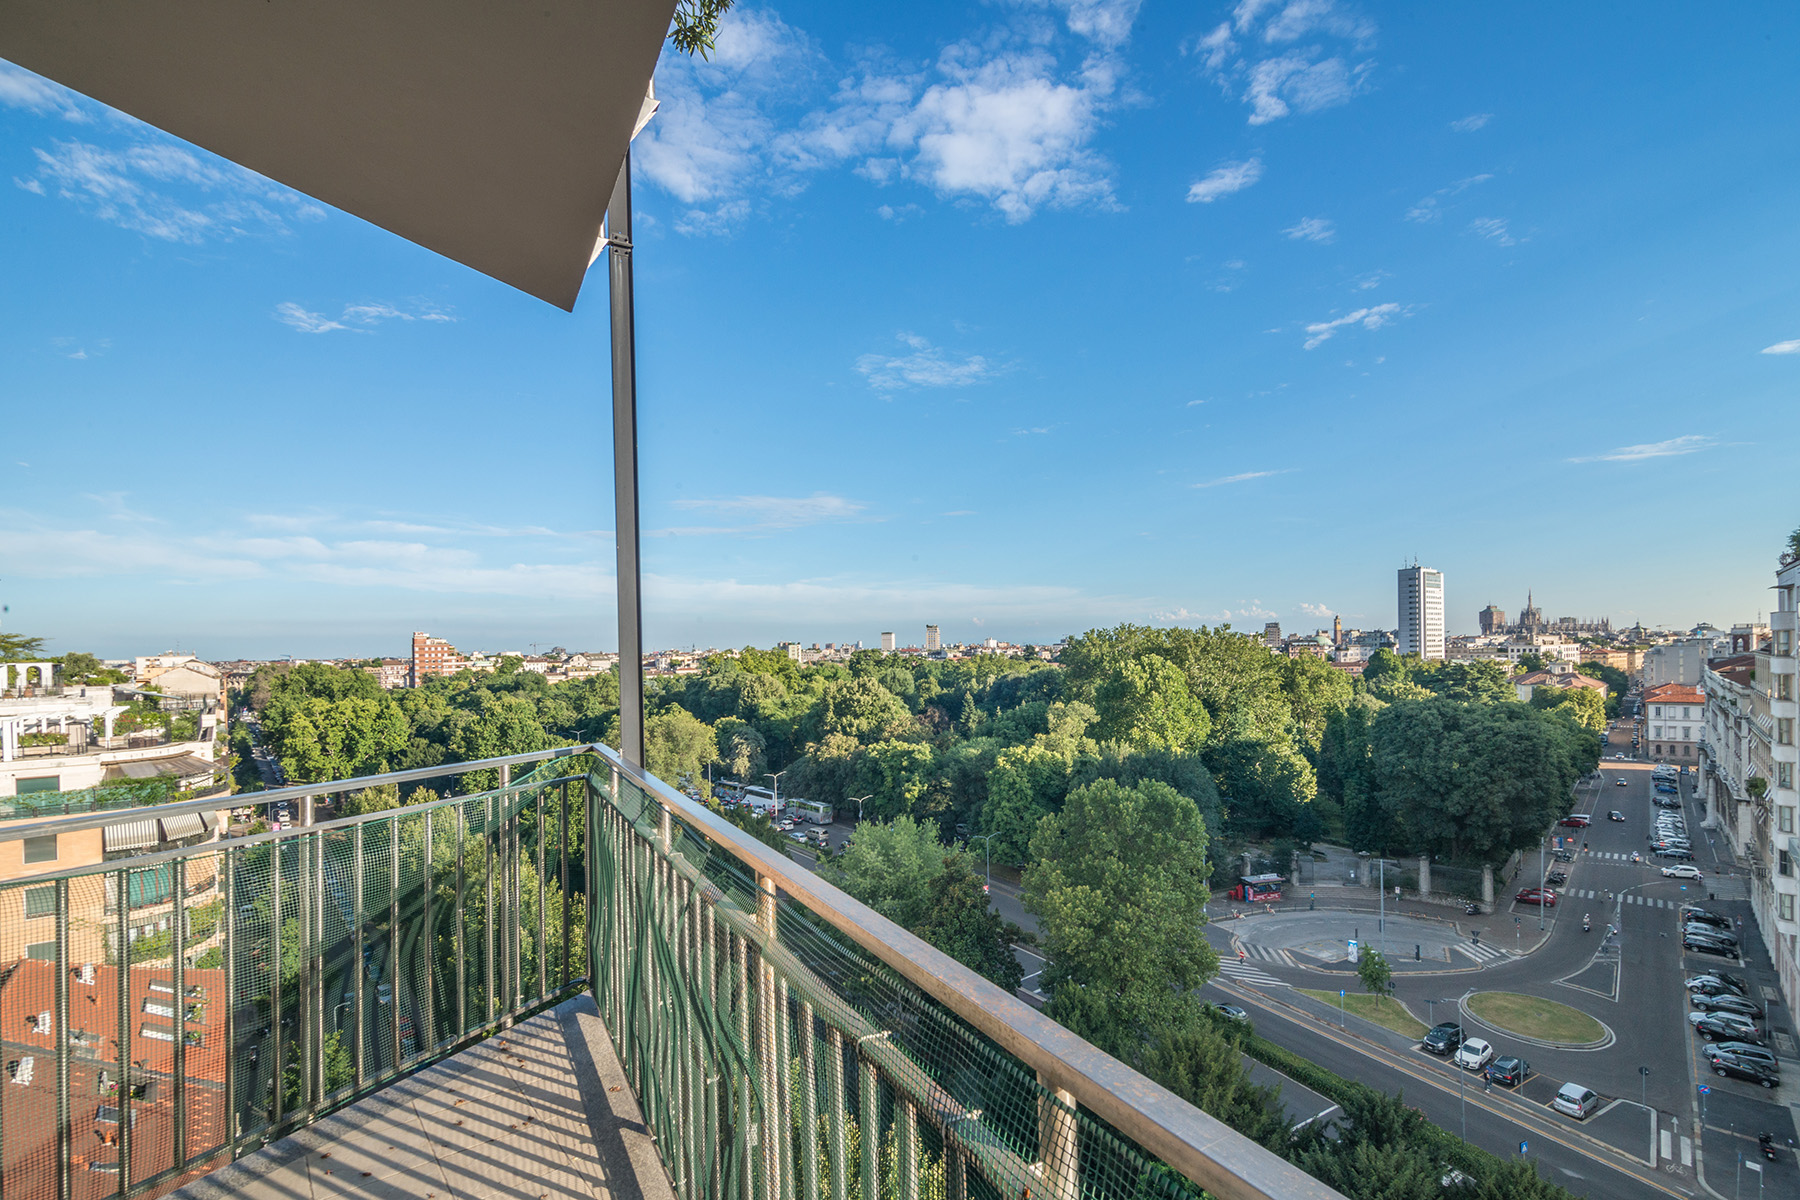 Additional photo for property listing at Panoramic penthouse with amazing view over the city centre Piazza della Repubblica Milano, Milan 20100 Italia